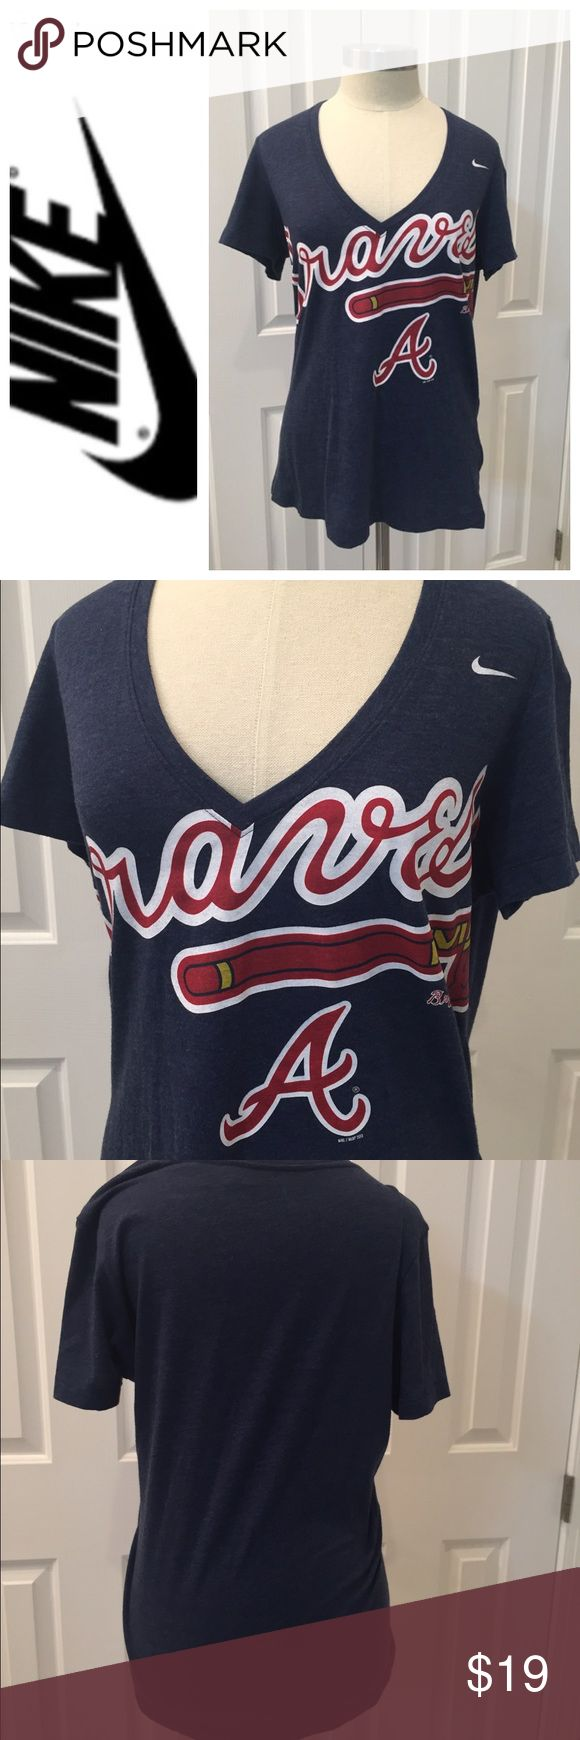 Nike Atlanta Braves Short Sleeve V Neck Shirt XL A must have for any Atlanta Braves fan. Navy blue Nike women's  v neck shirt sleeve shirt. Preowned, no rips or stains. Check out my closet to save on bundles, reasonable offers accepted. Nike Tops Tees - Short Sleeve